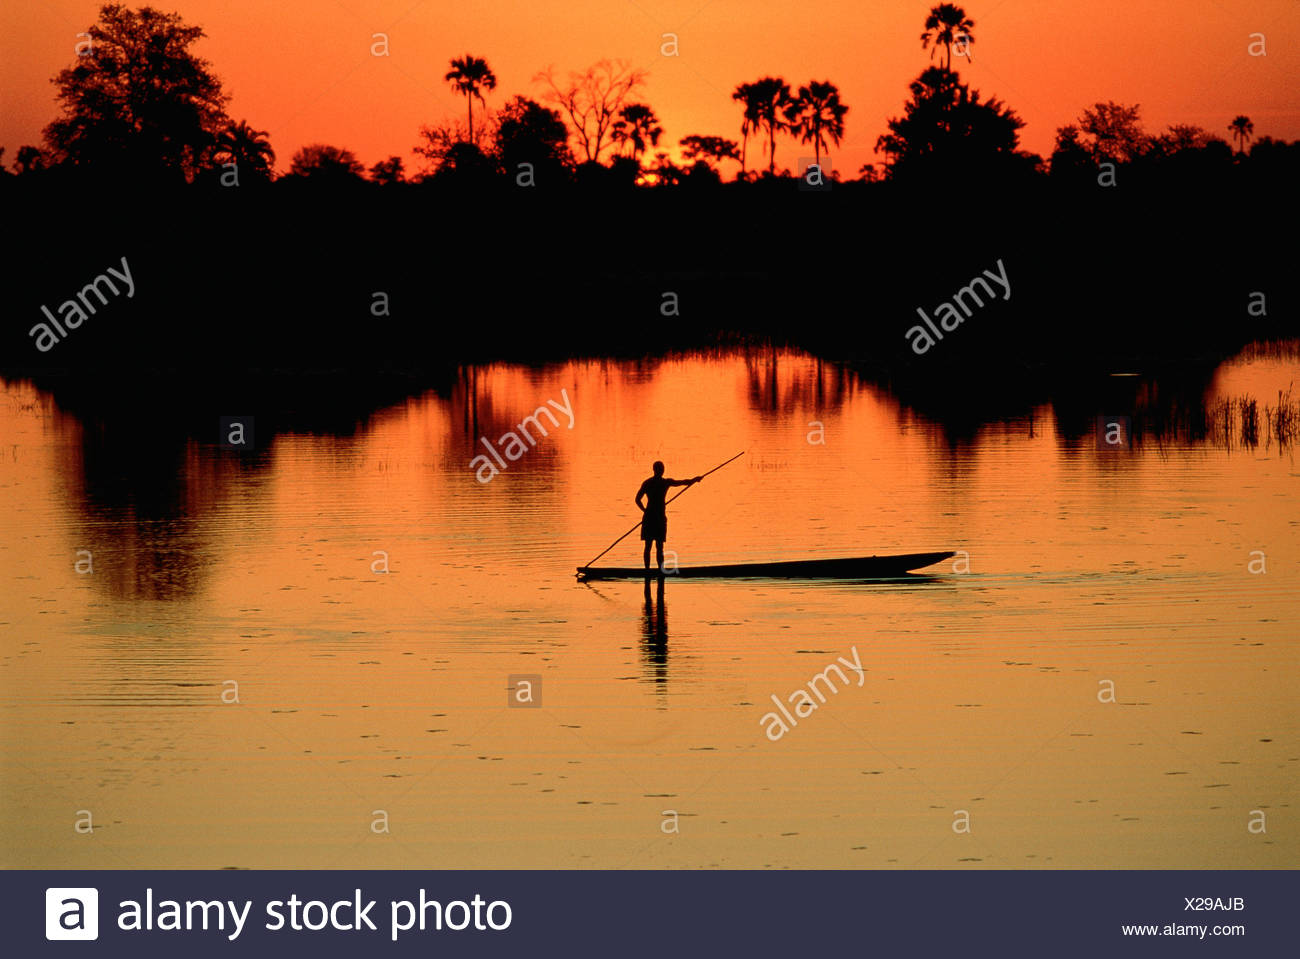 Boatman on the Chobe River at Sunset, Botswana, Africa - Stock Image